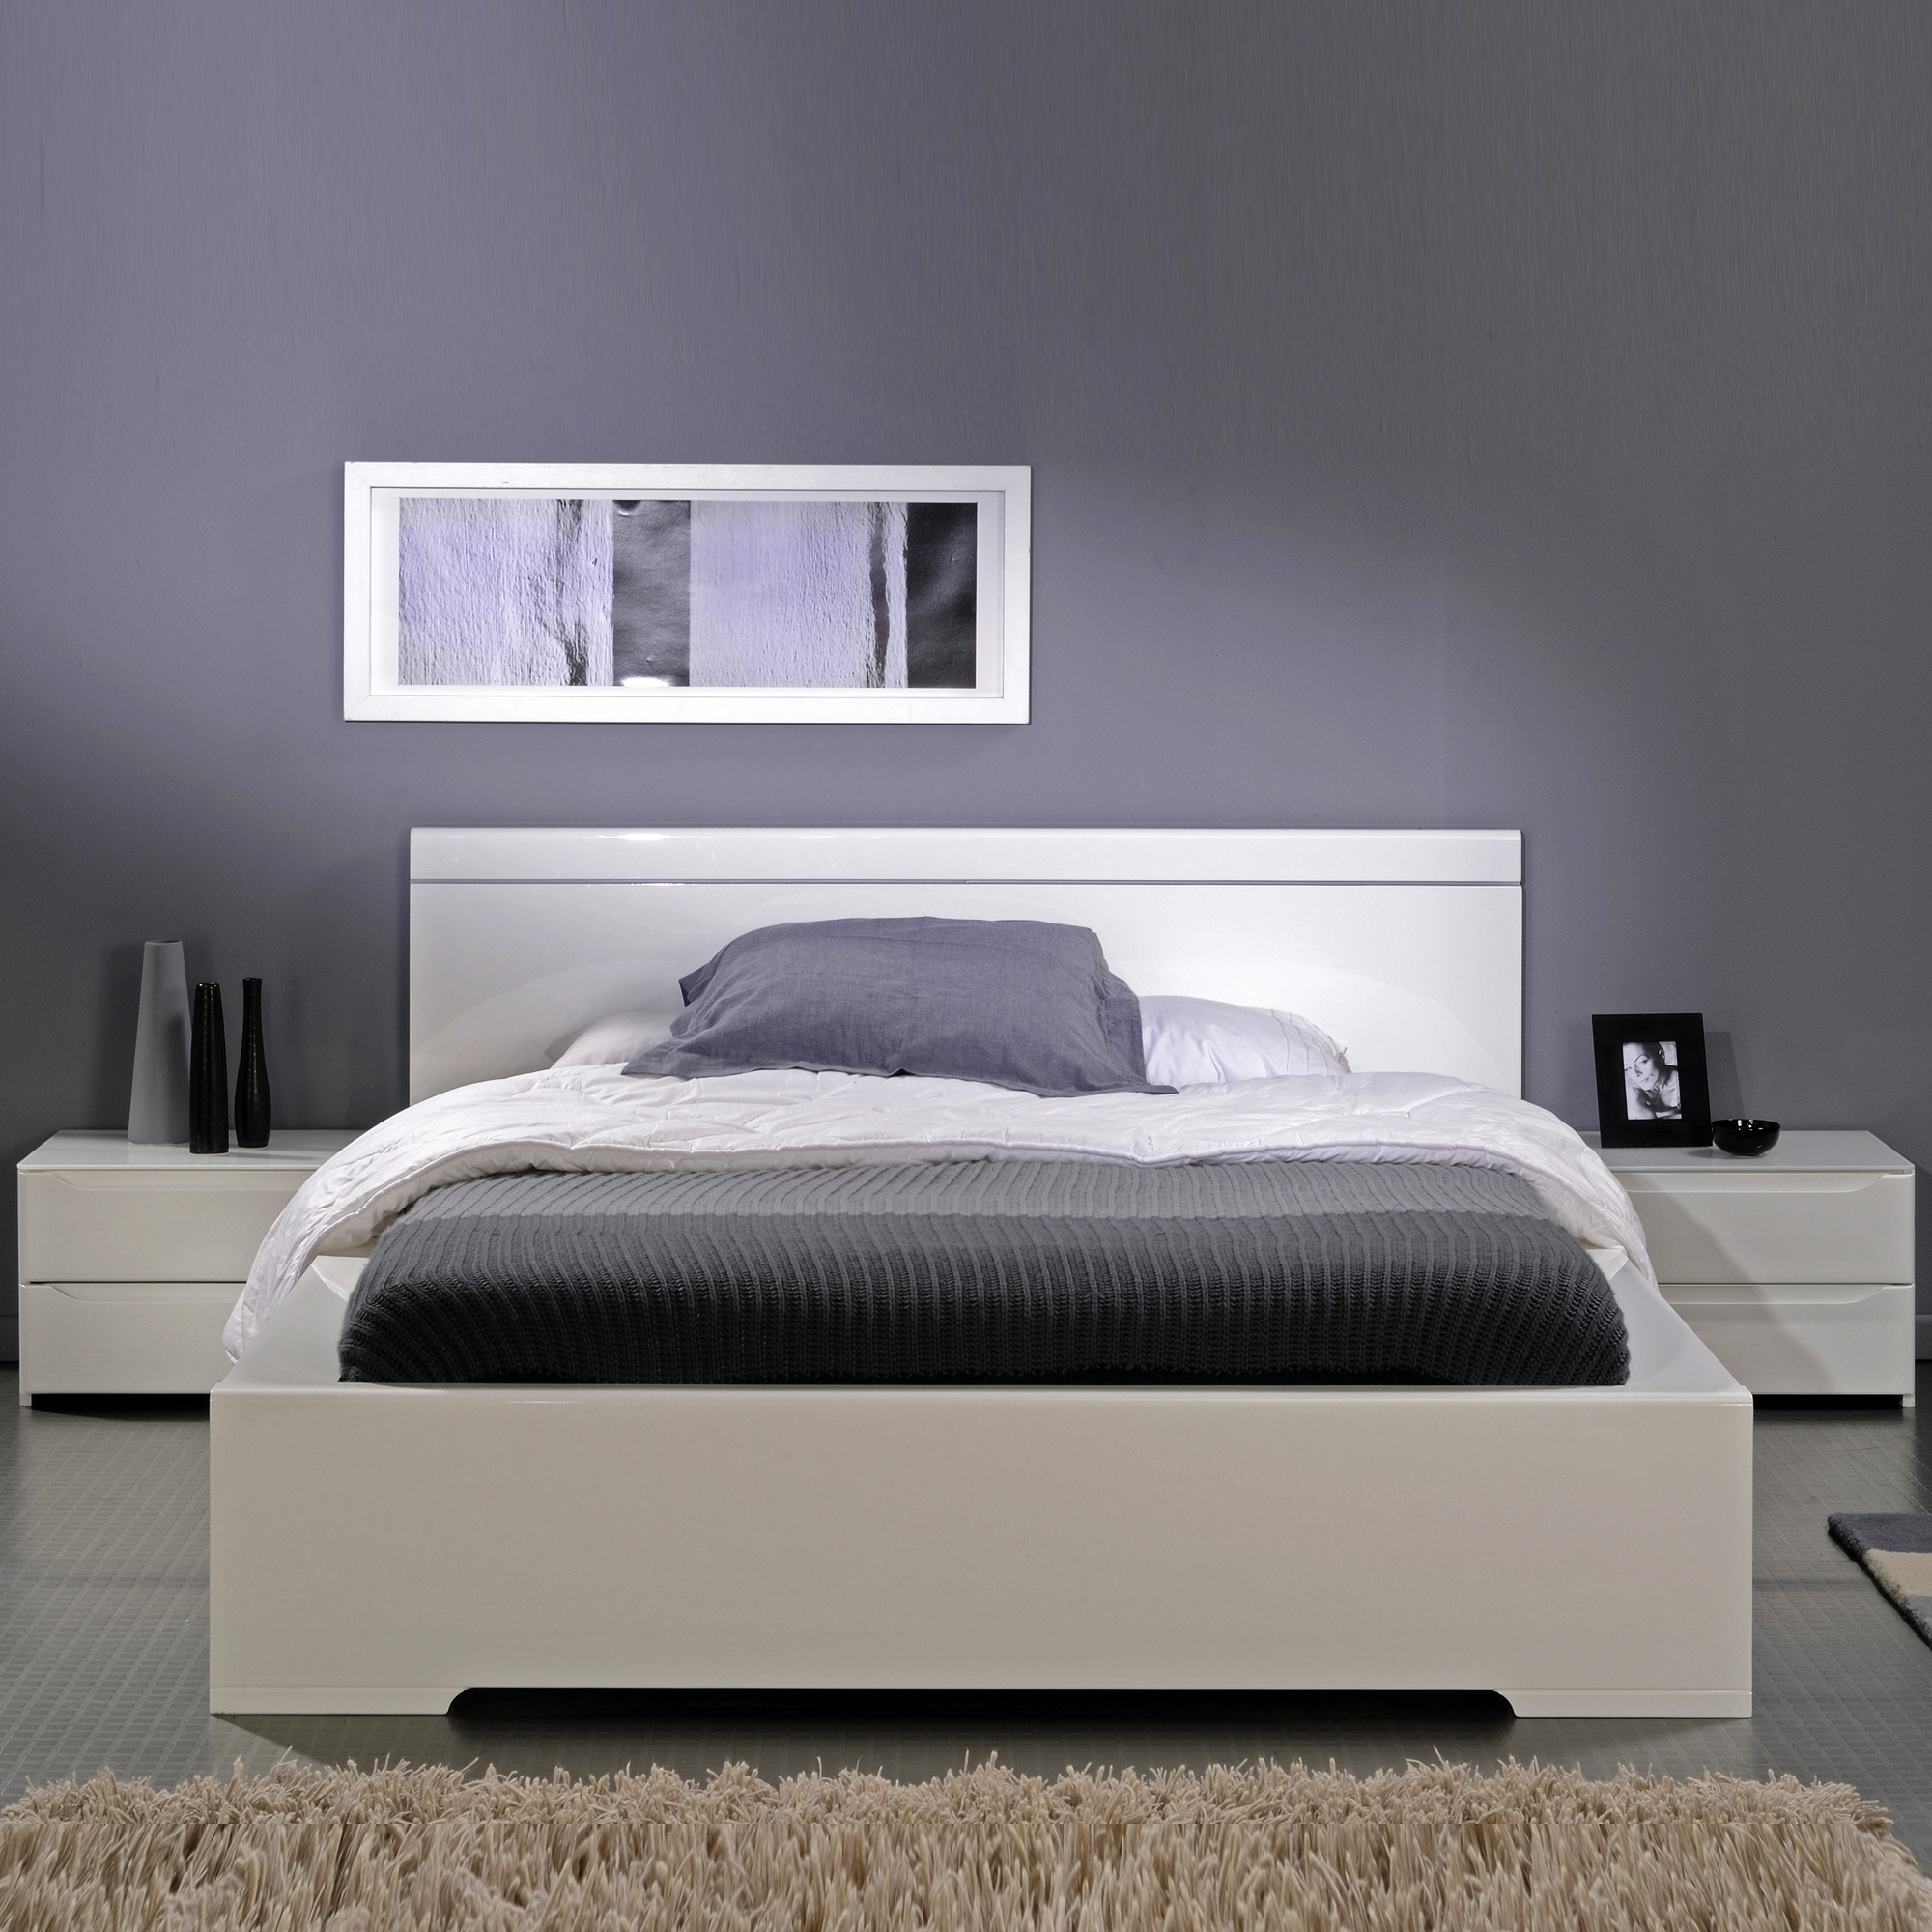 exceptional tete de lit avec led 5. Black Bedroom Furniture Sets. Home Design Ideas